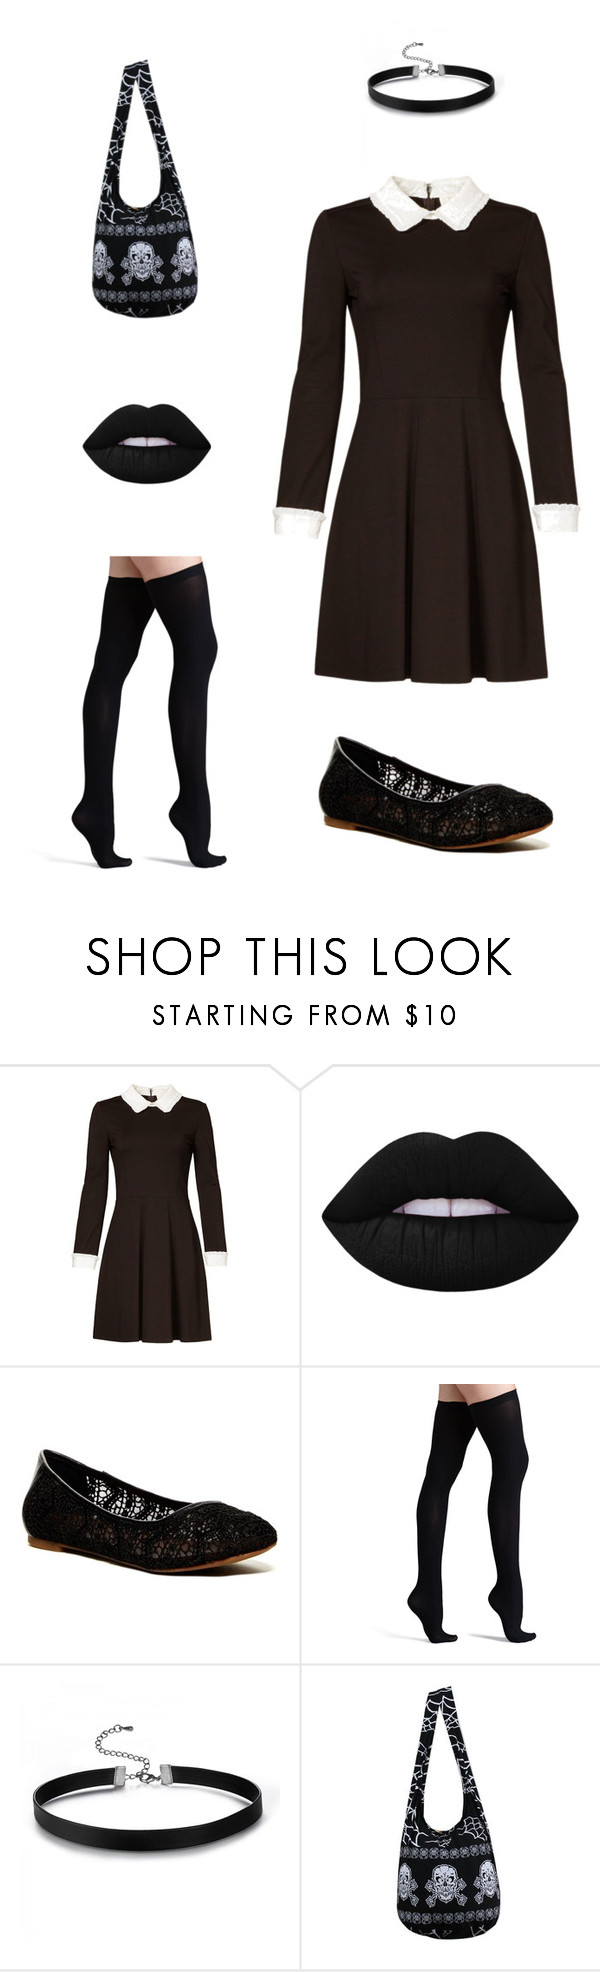 """""""Wednesday Addams Inspired"""" by mdingle2000 on Polyvore featuring ERIN Erin Fetherston, Lime Crime, Lucky Brand and Commando"""